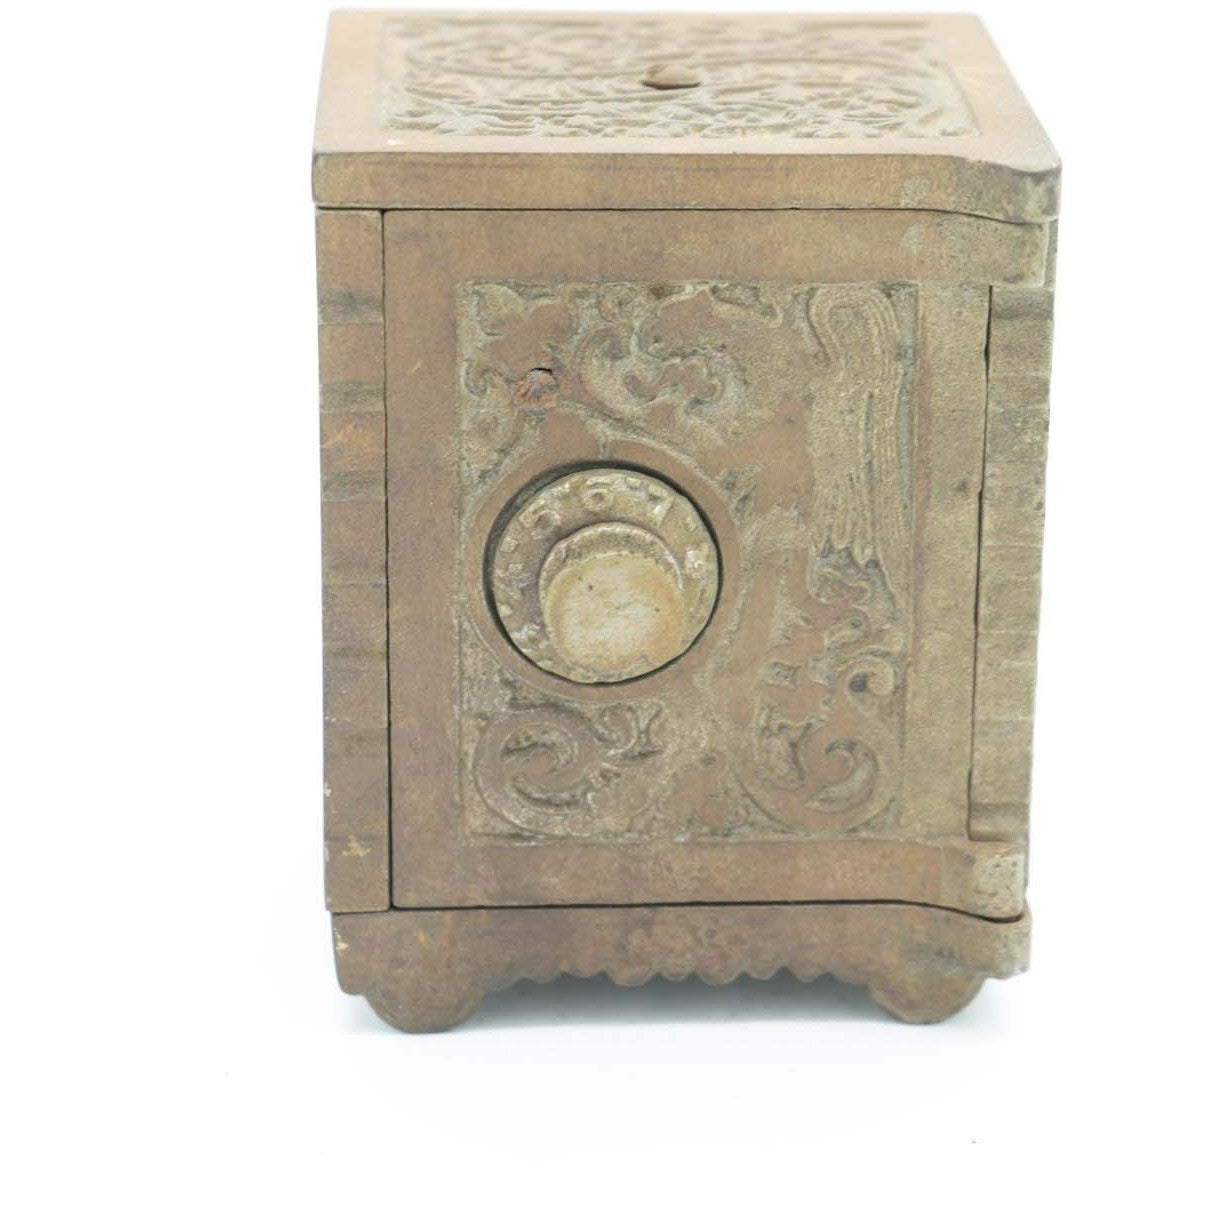 1900's Cast Iron Savings Bank Coin Safe